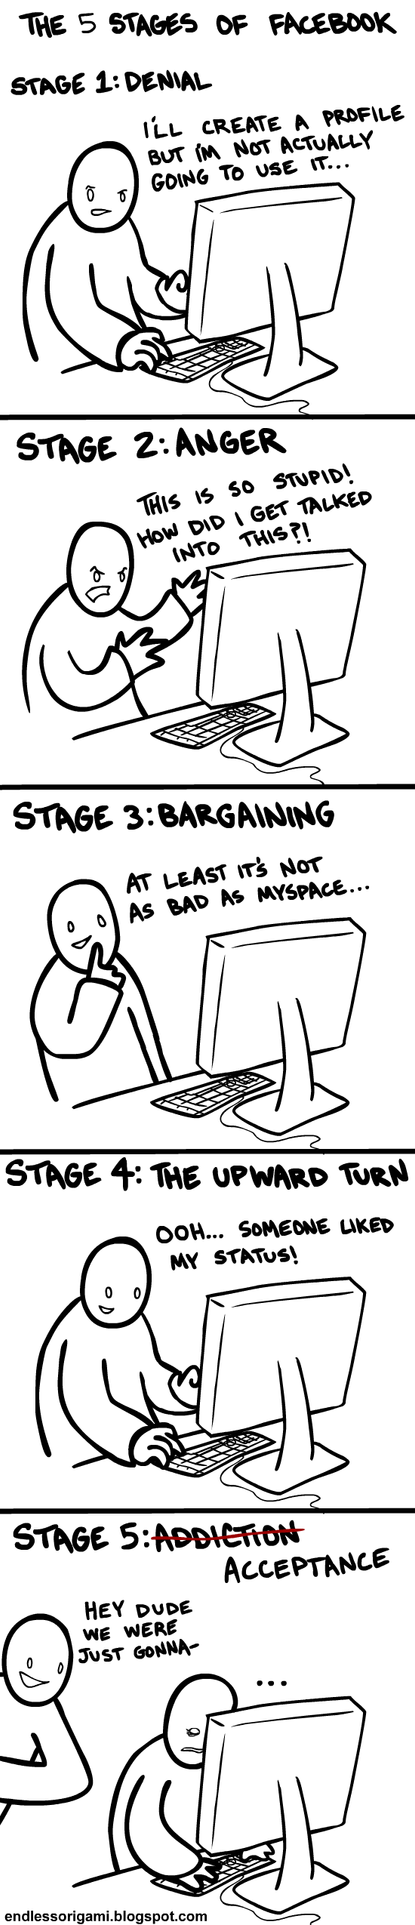 The 5 Stages of Facebook by endlessorigami